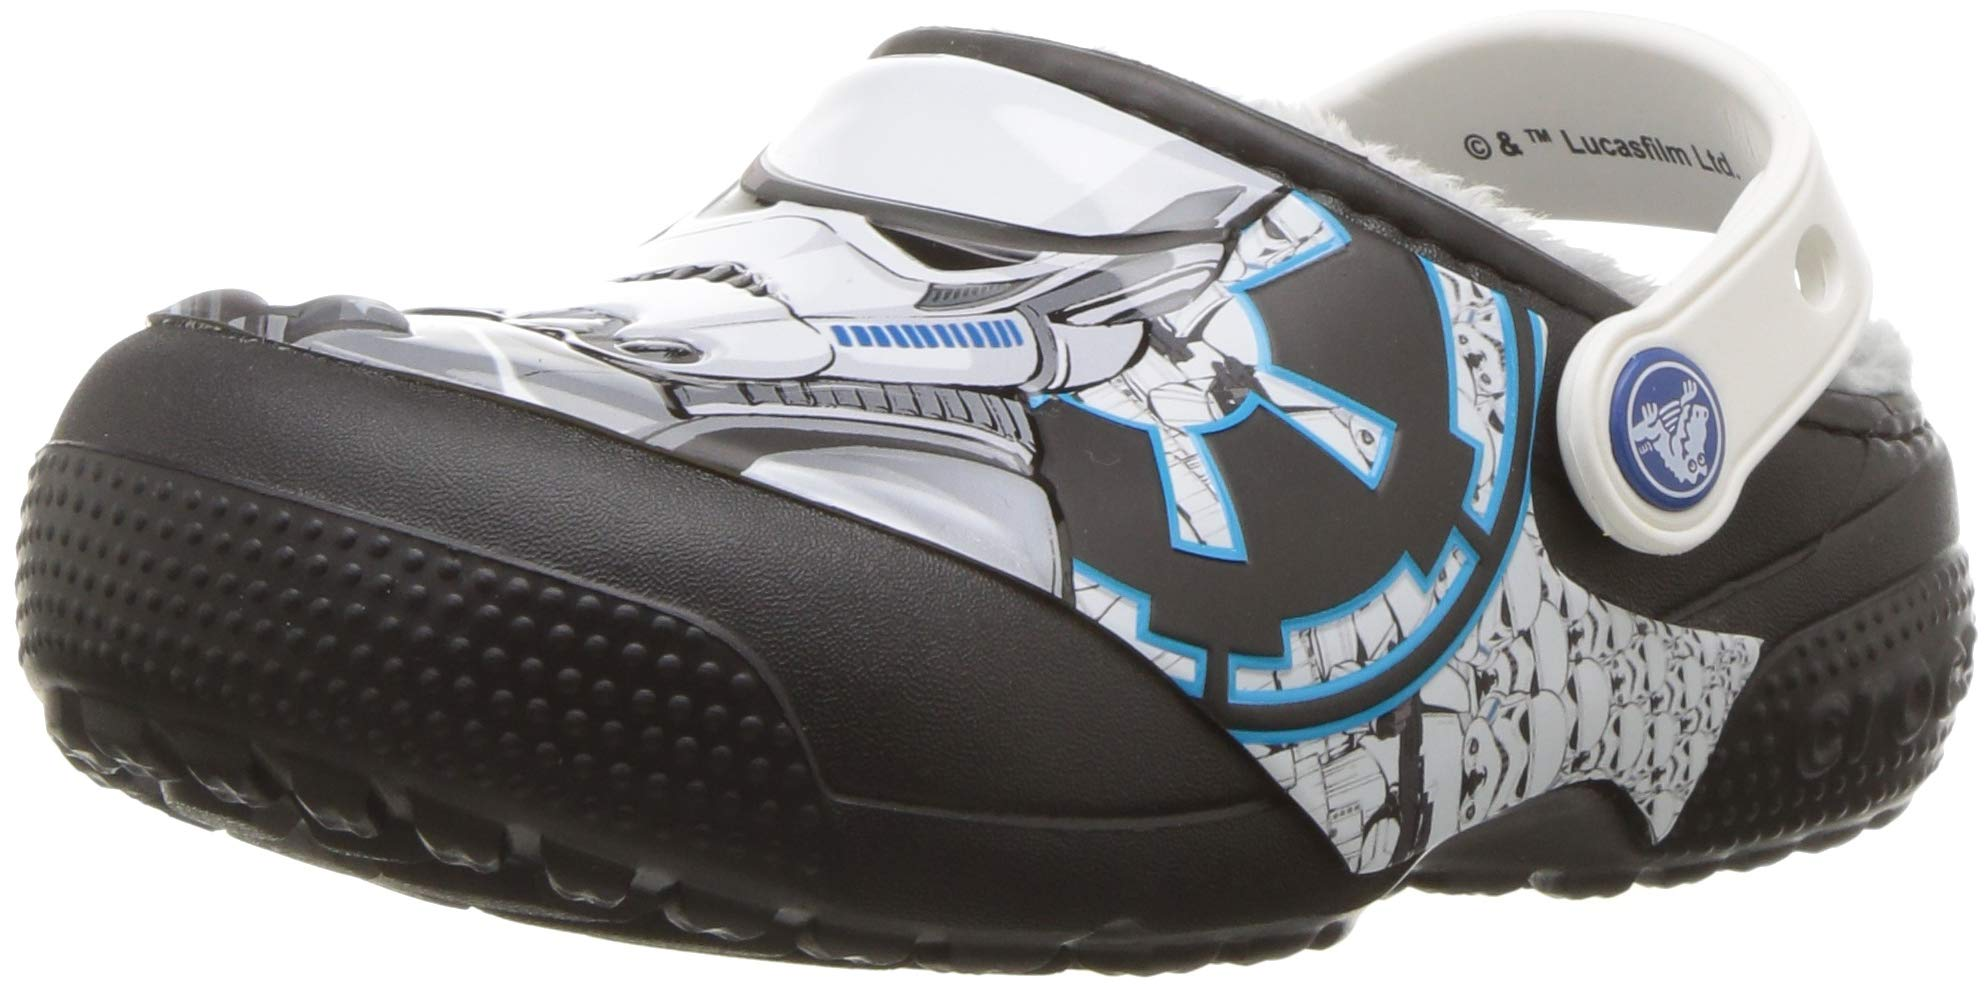 Crocs Unisex FunLab Lined Stormtrooper Clog, Black, 13 M US Little Kid by Crocs (Image #1)